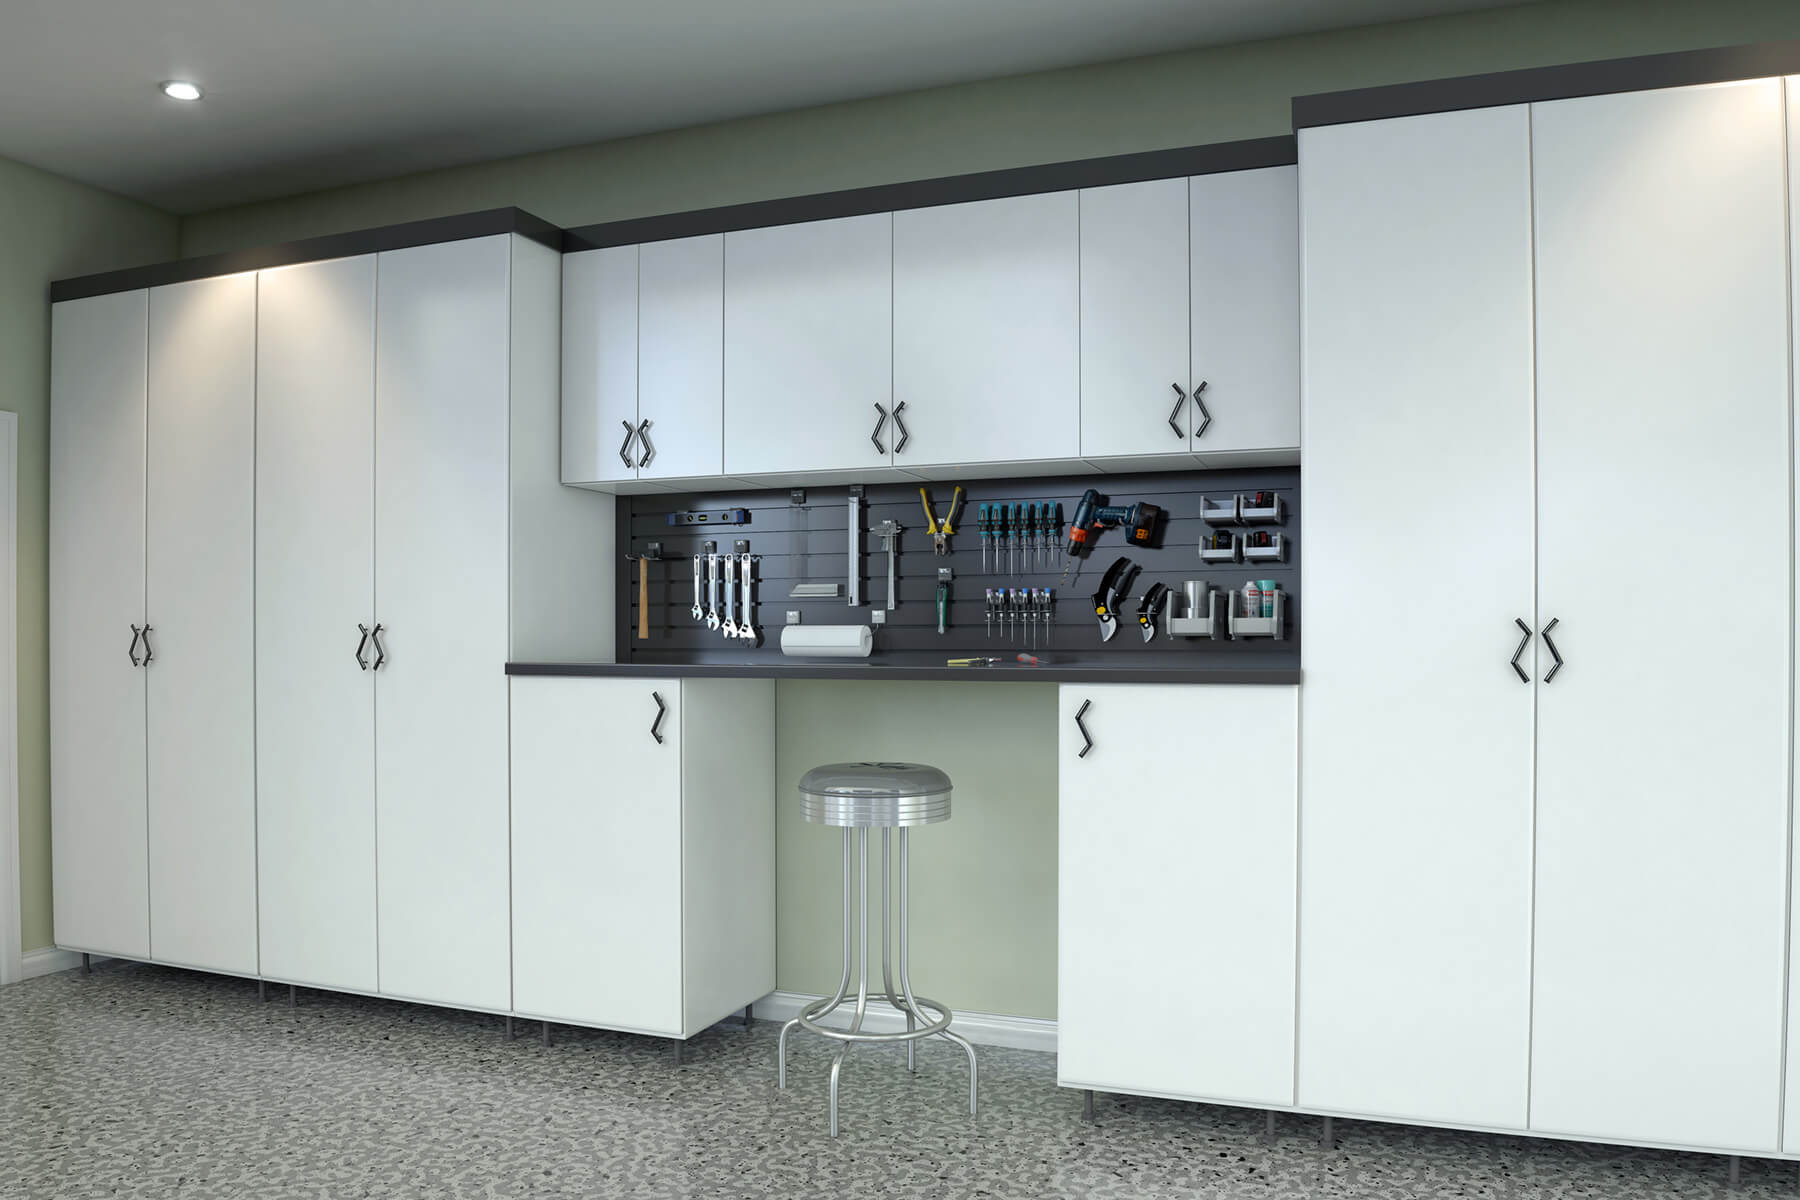 A neat look is achieved in this garage where enclosed white melamine cabinets line up against an entire wall. Featured in the middle is an open tool storage where a workbench stands below.